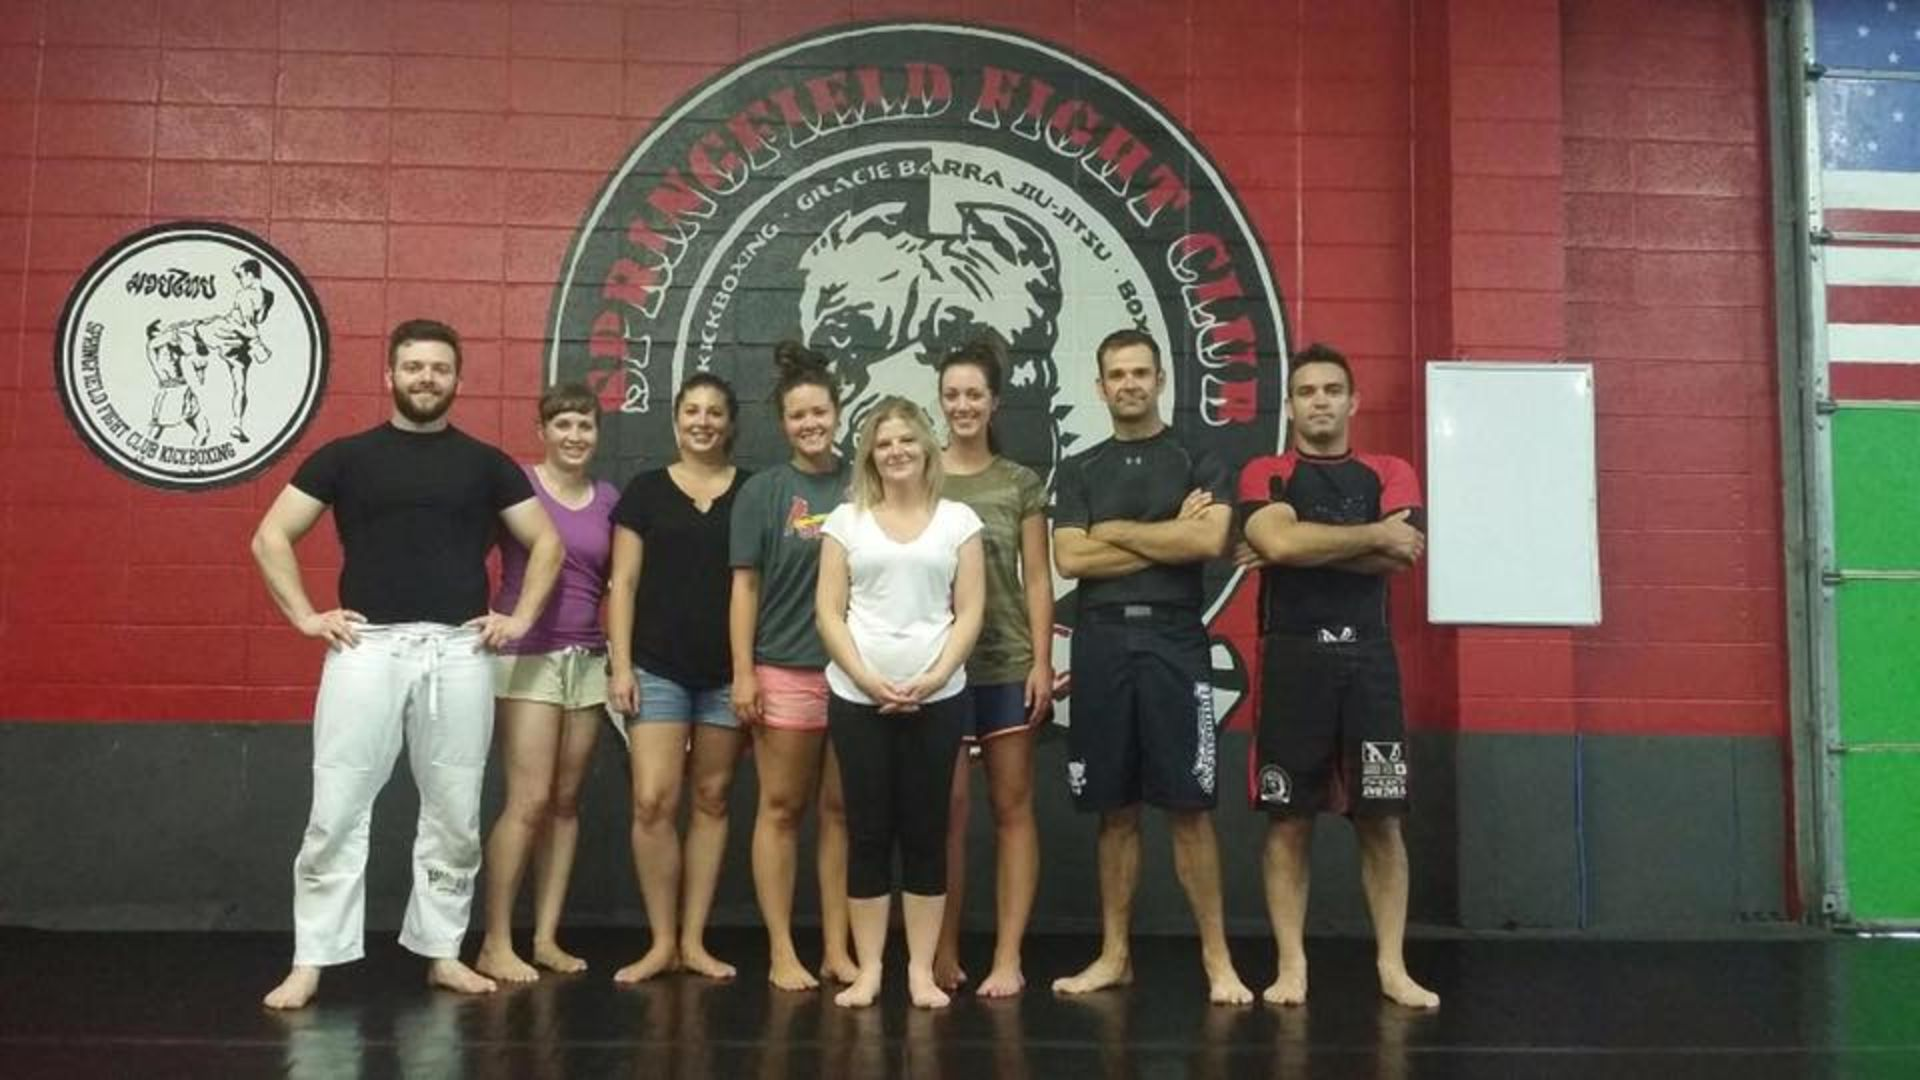 Self Defense Class at The Springfield Fight Club